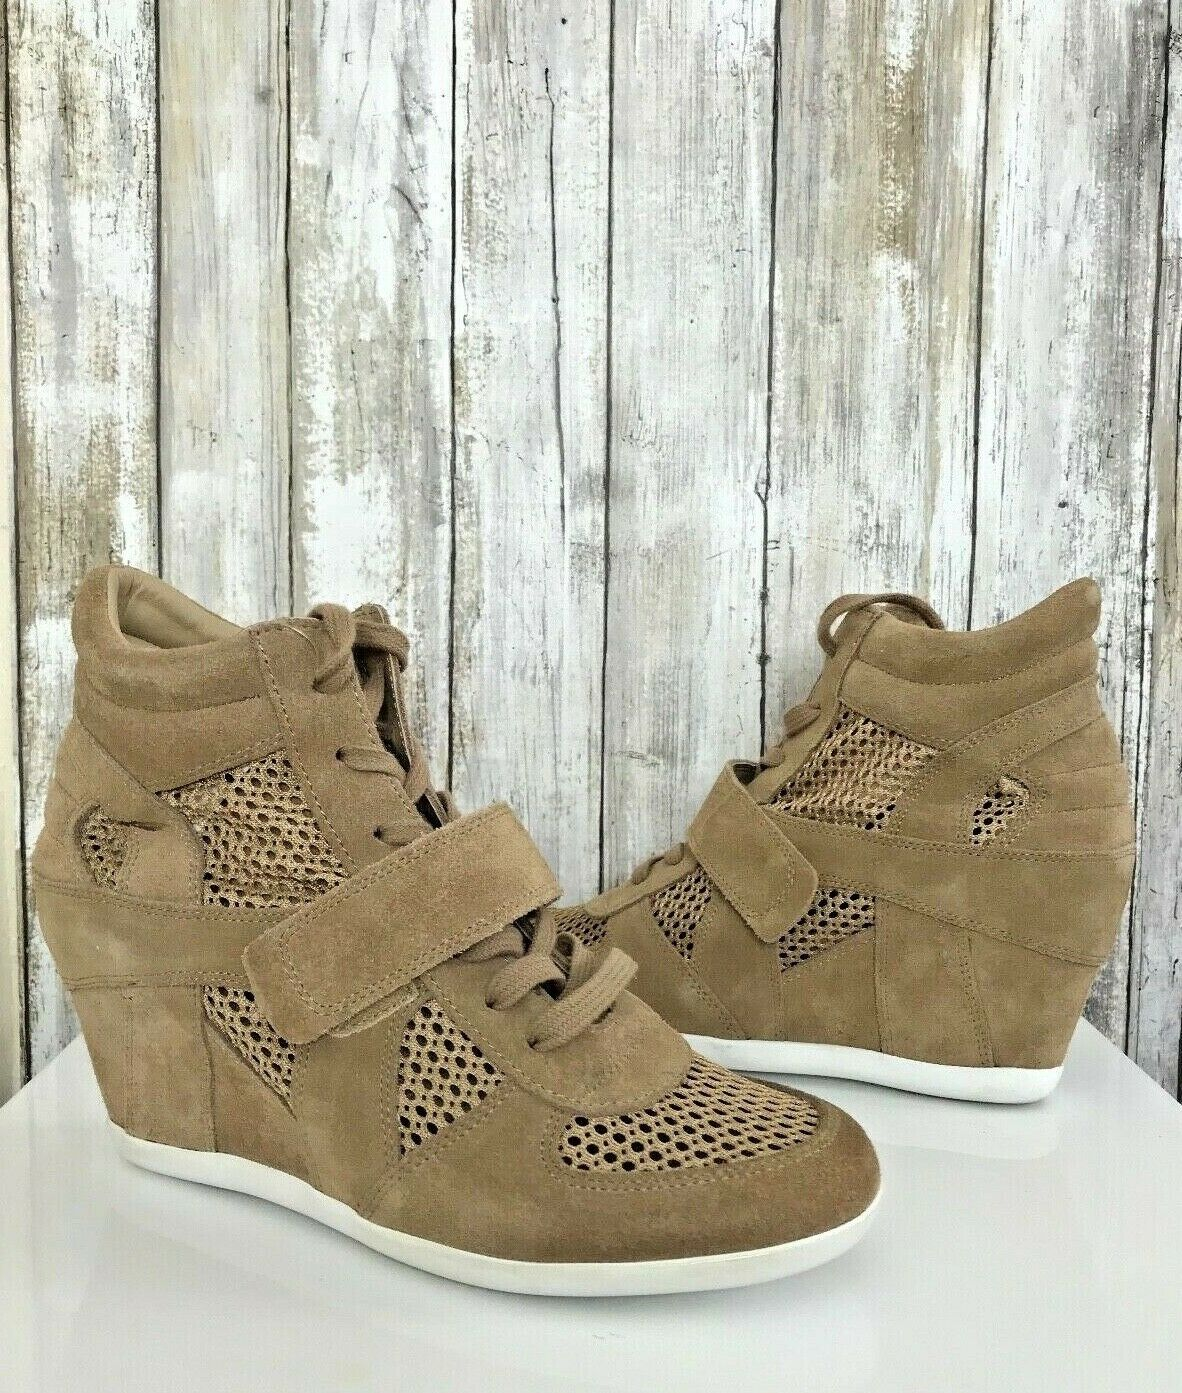 Ash Ash Ash BOWIE Suede Canvas Perforated Mesh Wedge Sneakers shoes 39 8.5 9 Cool NEW f542ad